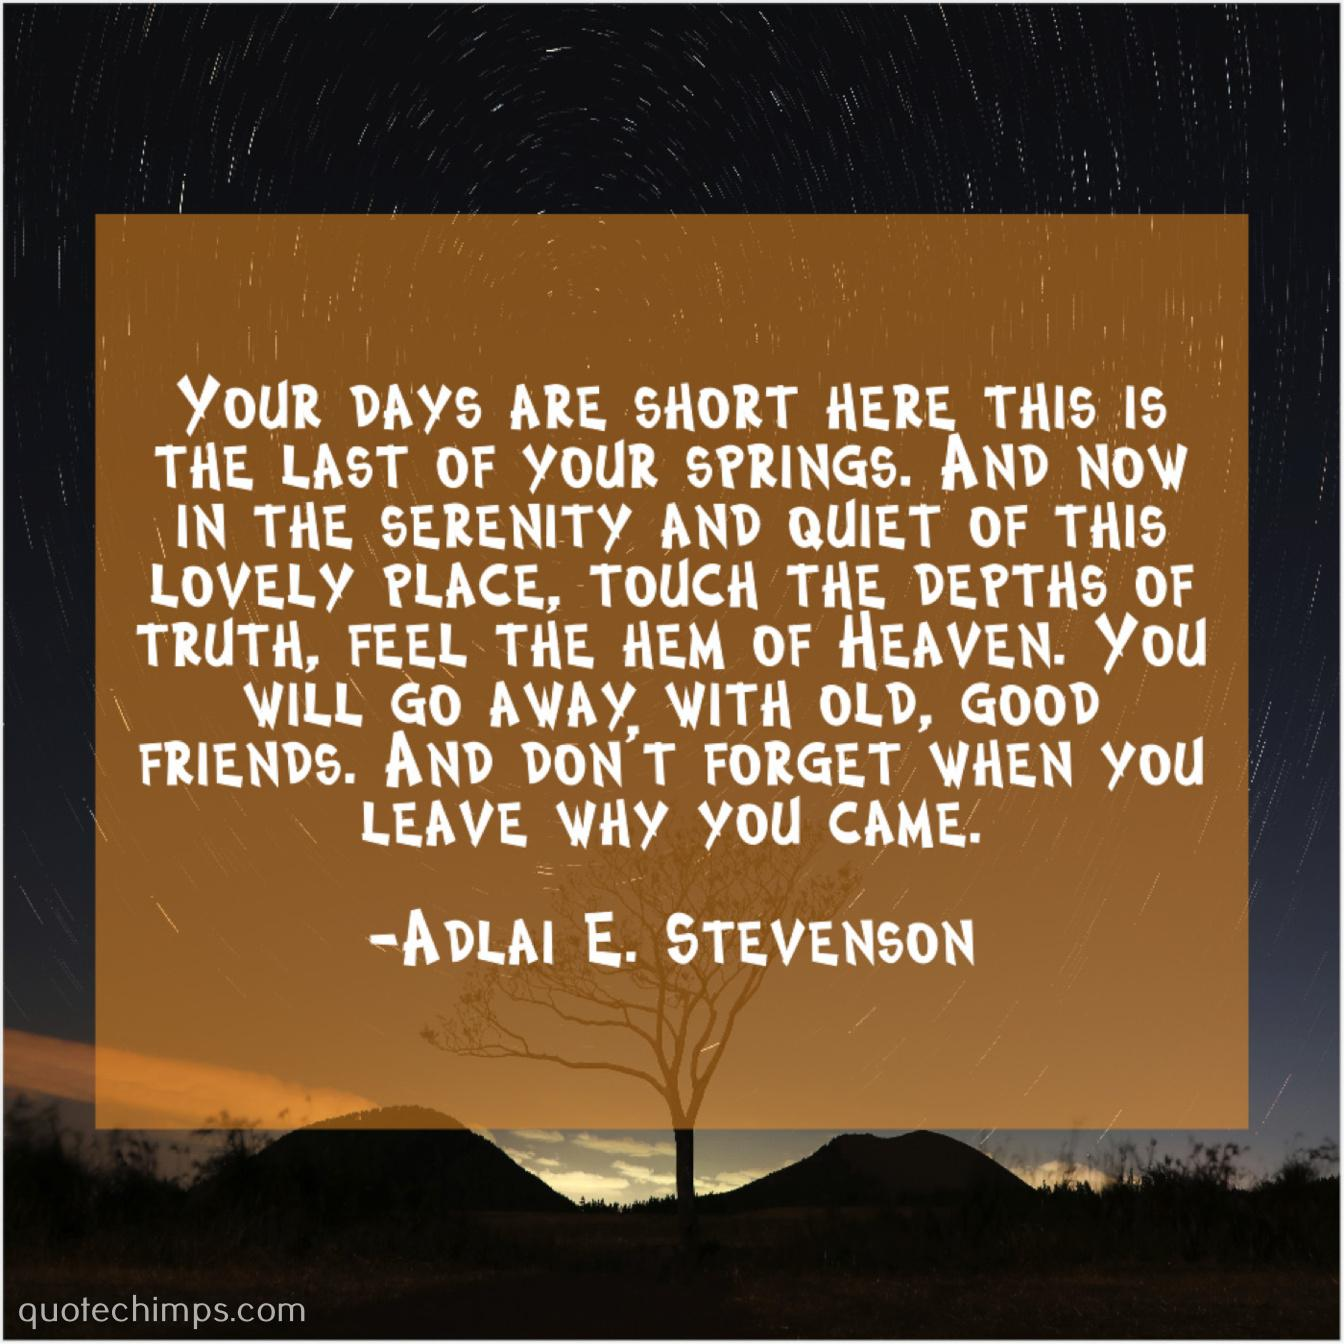 """Your days are short here; this is the last of your springs. And now in the serenity and quiet of this lovely place, touch the depths of truth, feel the hem of Heaven. You will go away with old, good friends. And don't forget when you leave why you came."" ~Adlai E. Stevenson [1344×1344]"